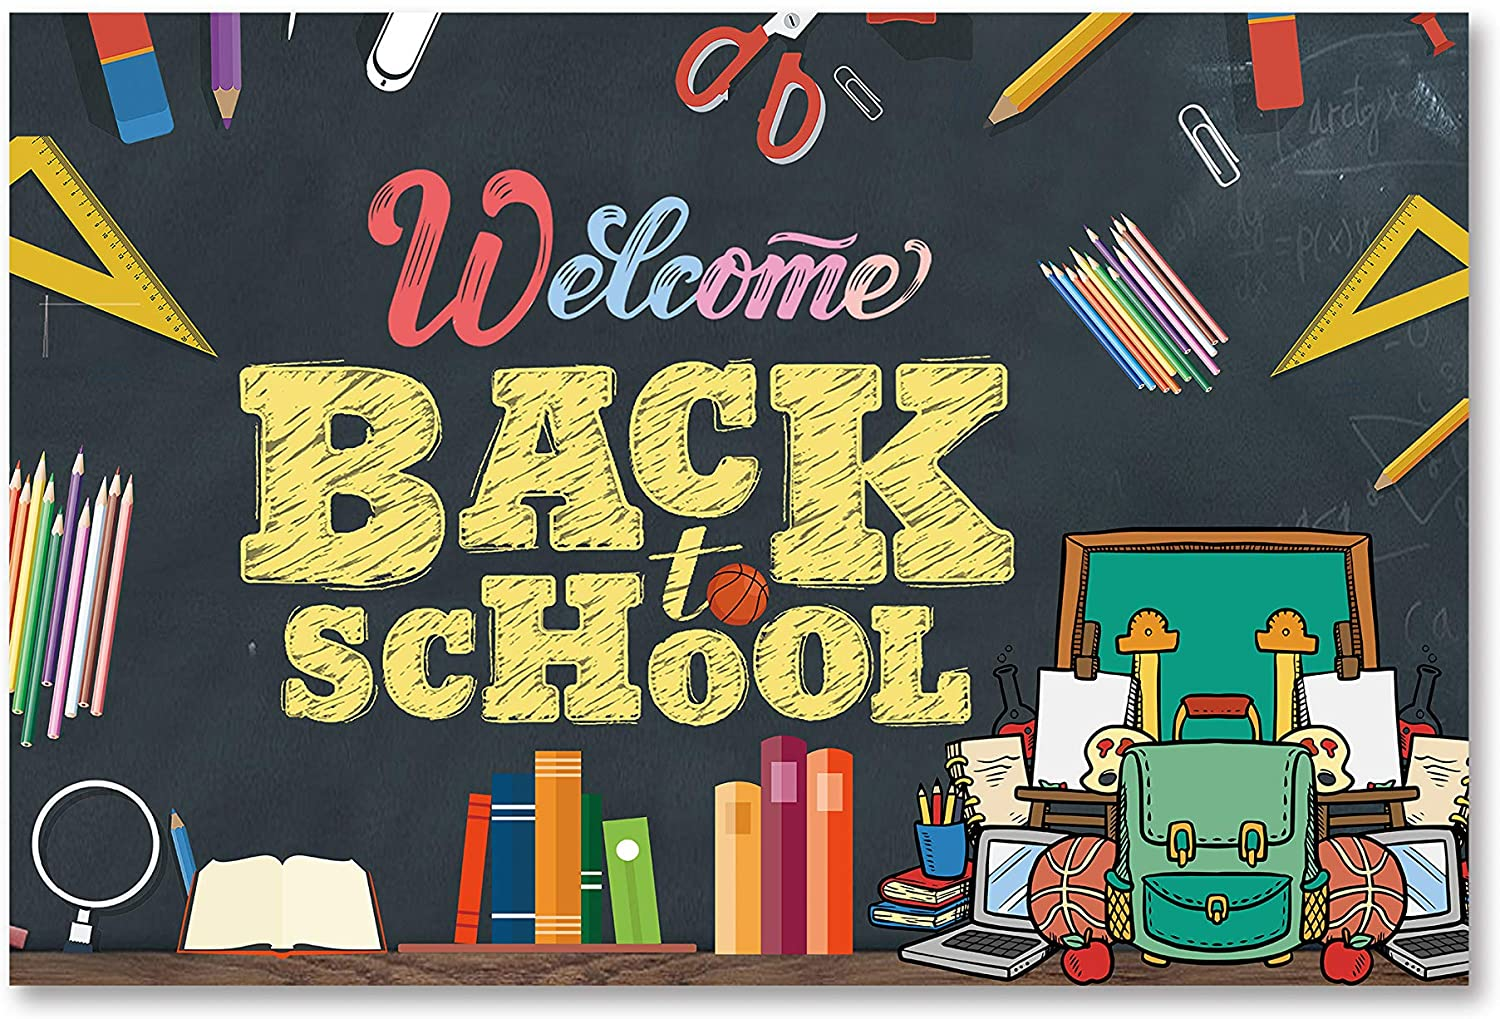 Amazon.com: Welcome Back to School Banner, 2021 Back to School Decorations, Back to School Party Decorations,First Day of School Banner,Welcome Back to School Logo Banner,: Health & Personal Care